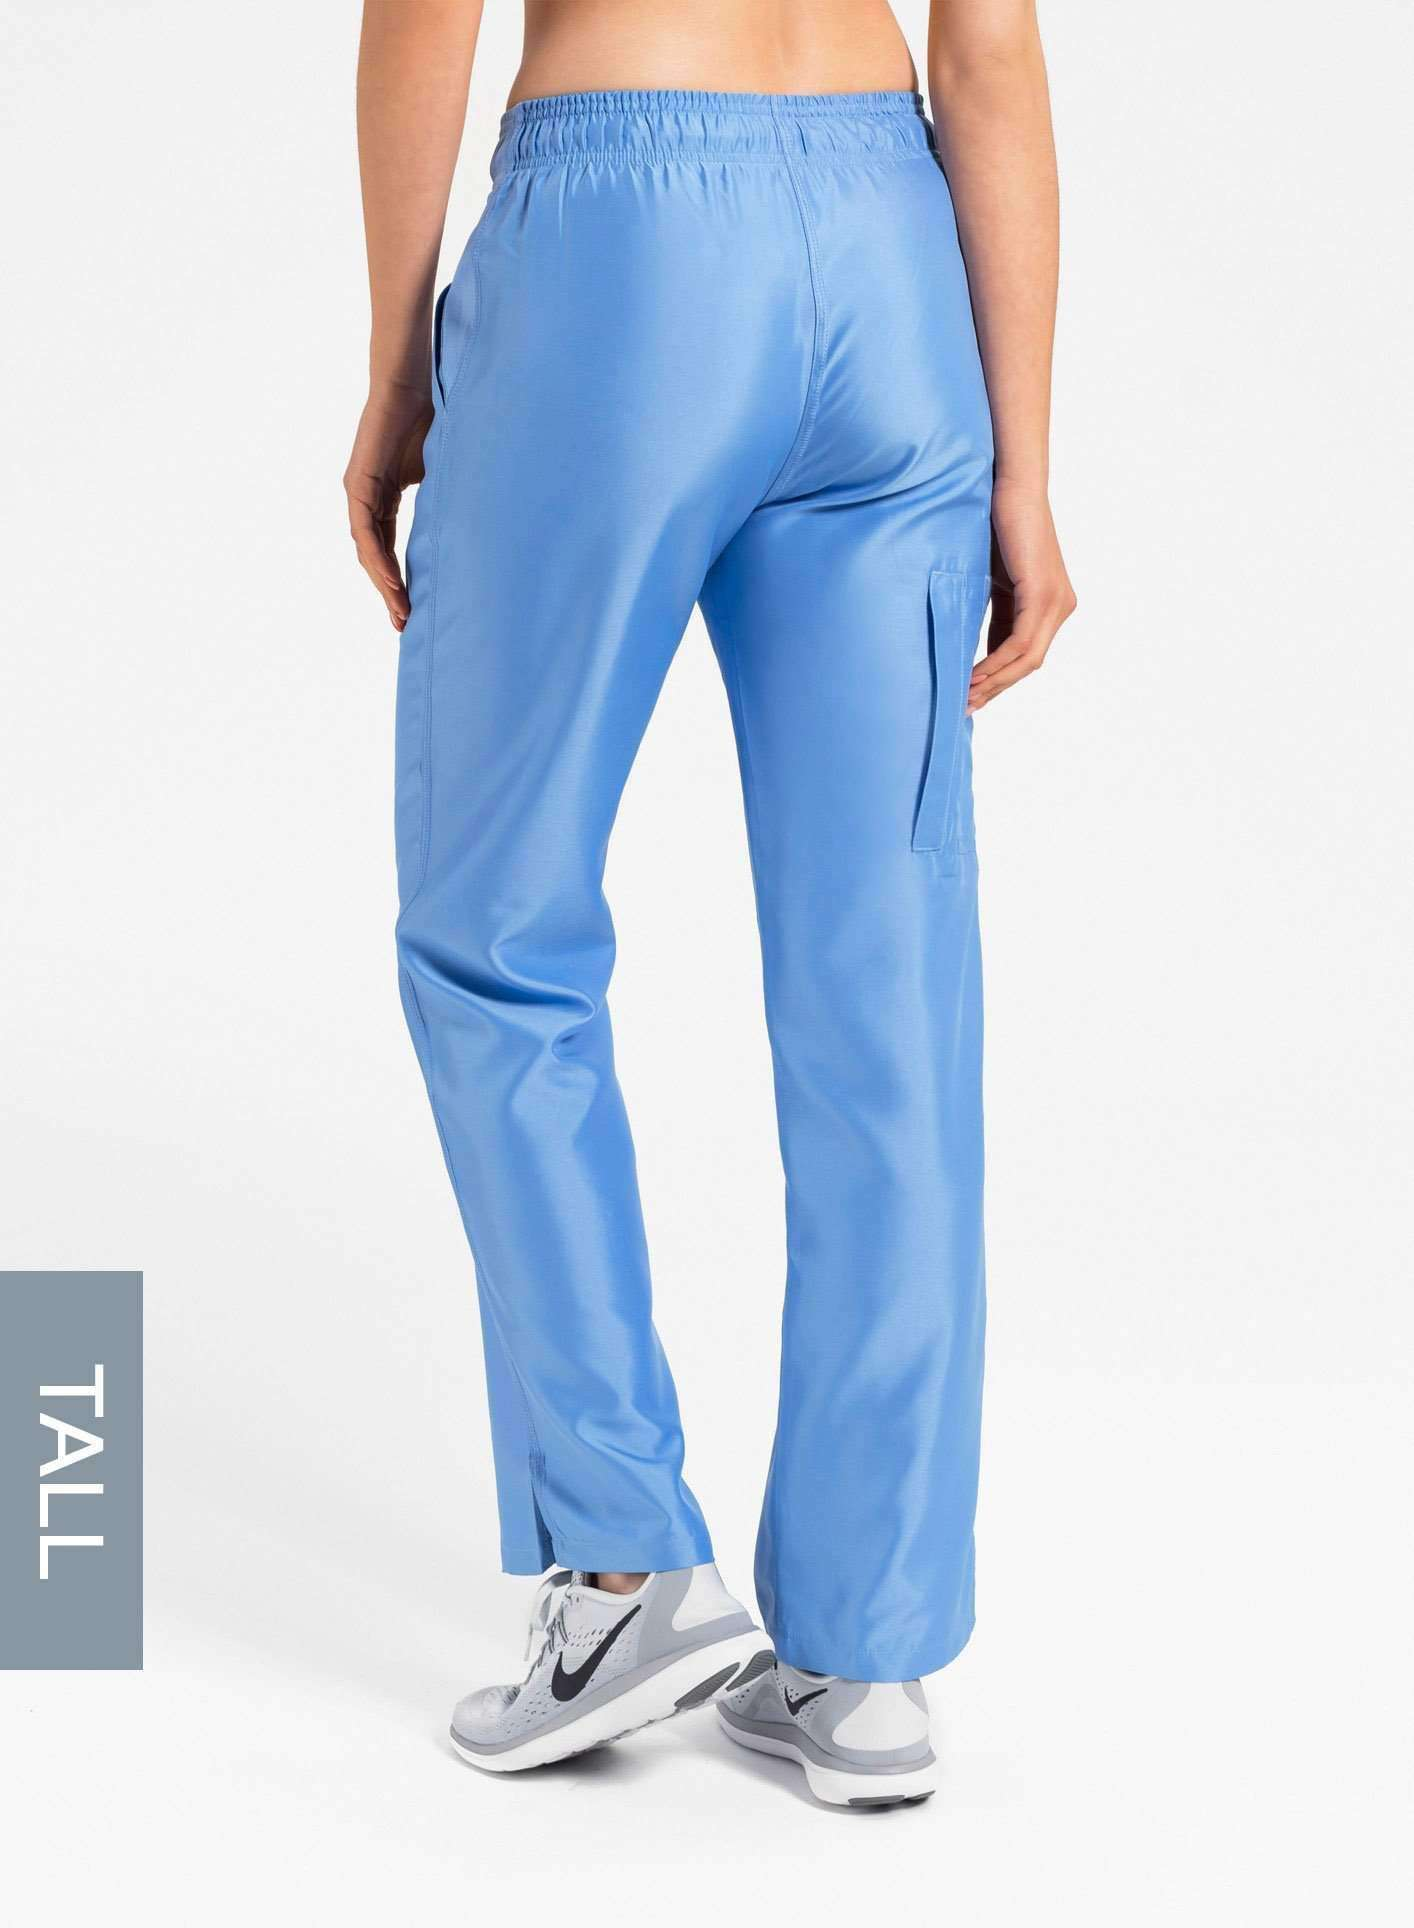 womens tall cargo pocket straight leg scrub pants ceil blue Elements back